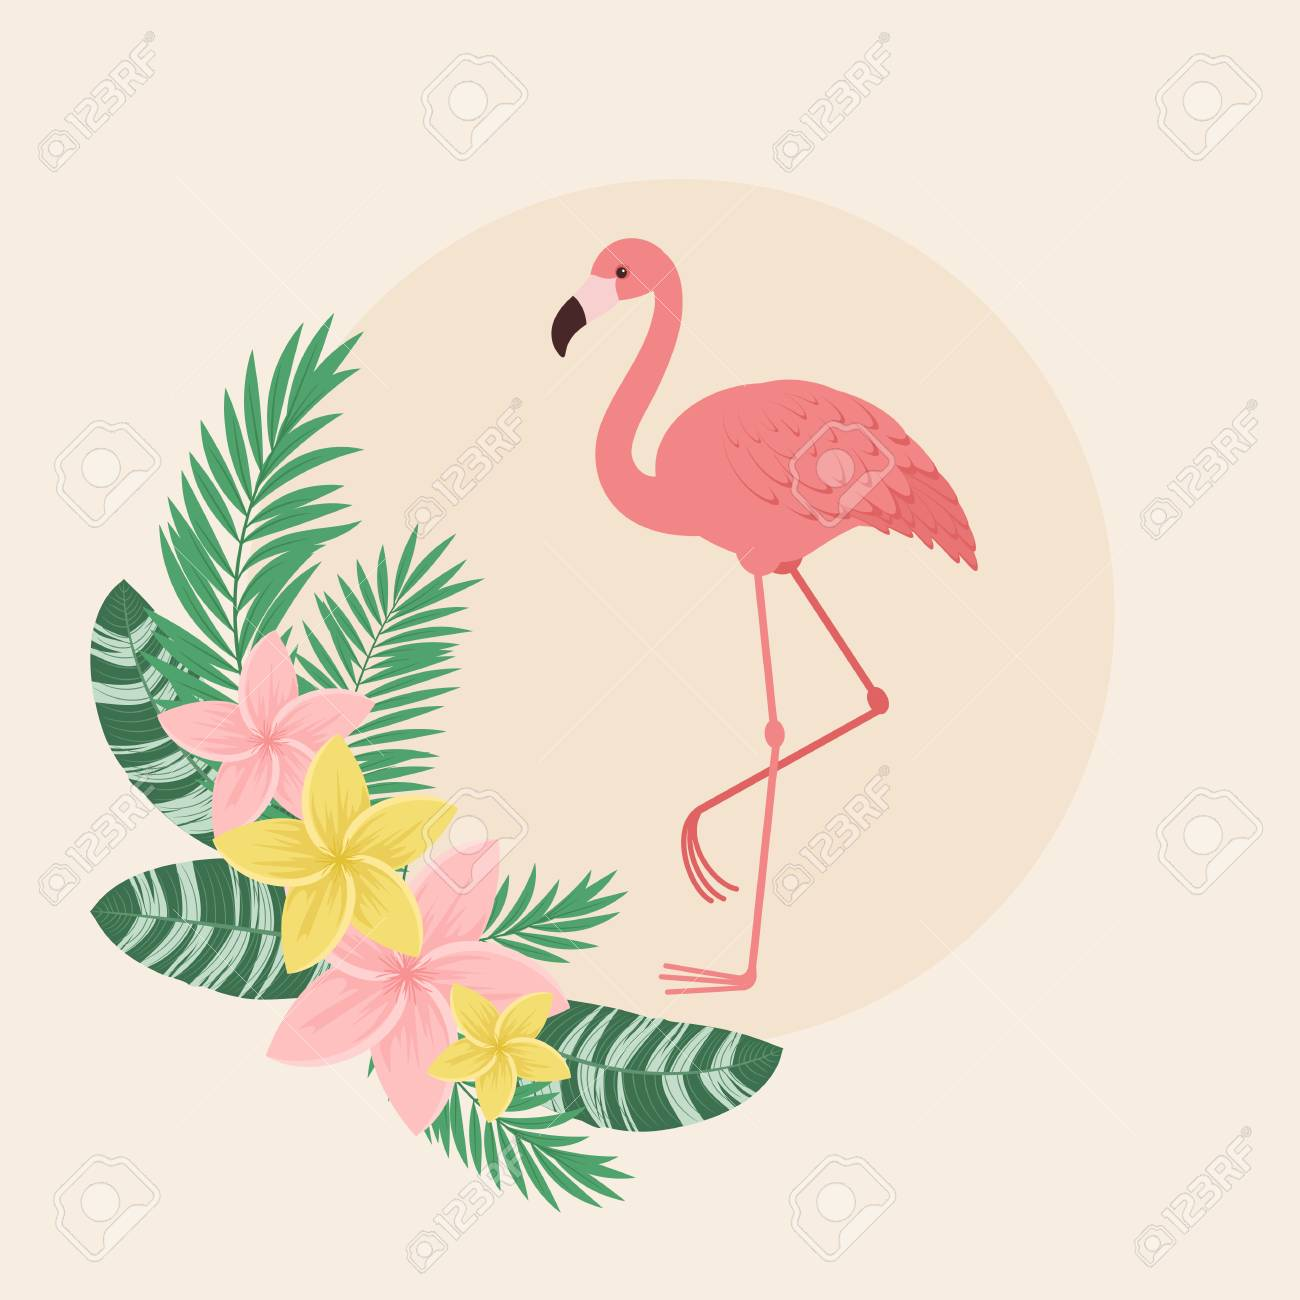 flamingo with tropical flowers and leaves. vector art royalty free  cliparts, vectors, and stock illustration. image 101749606.  123rf